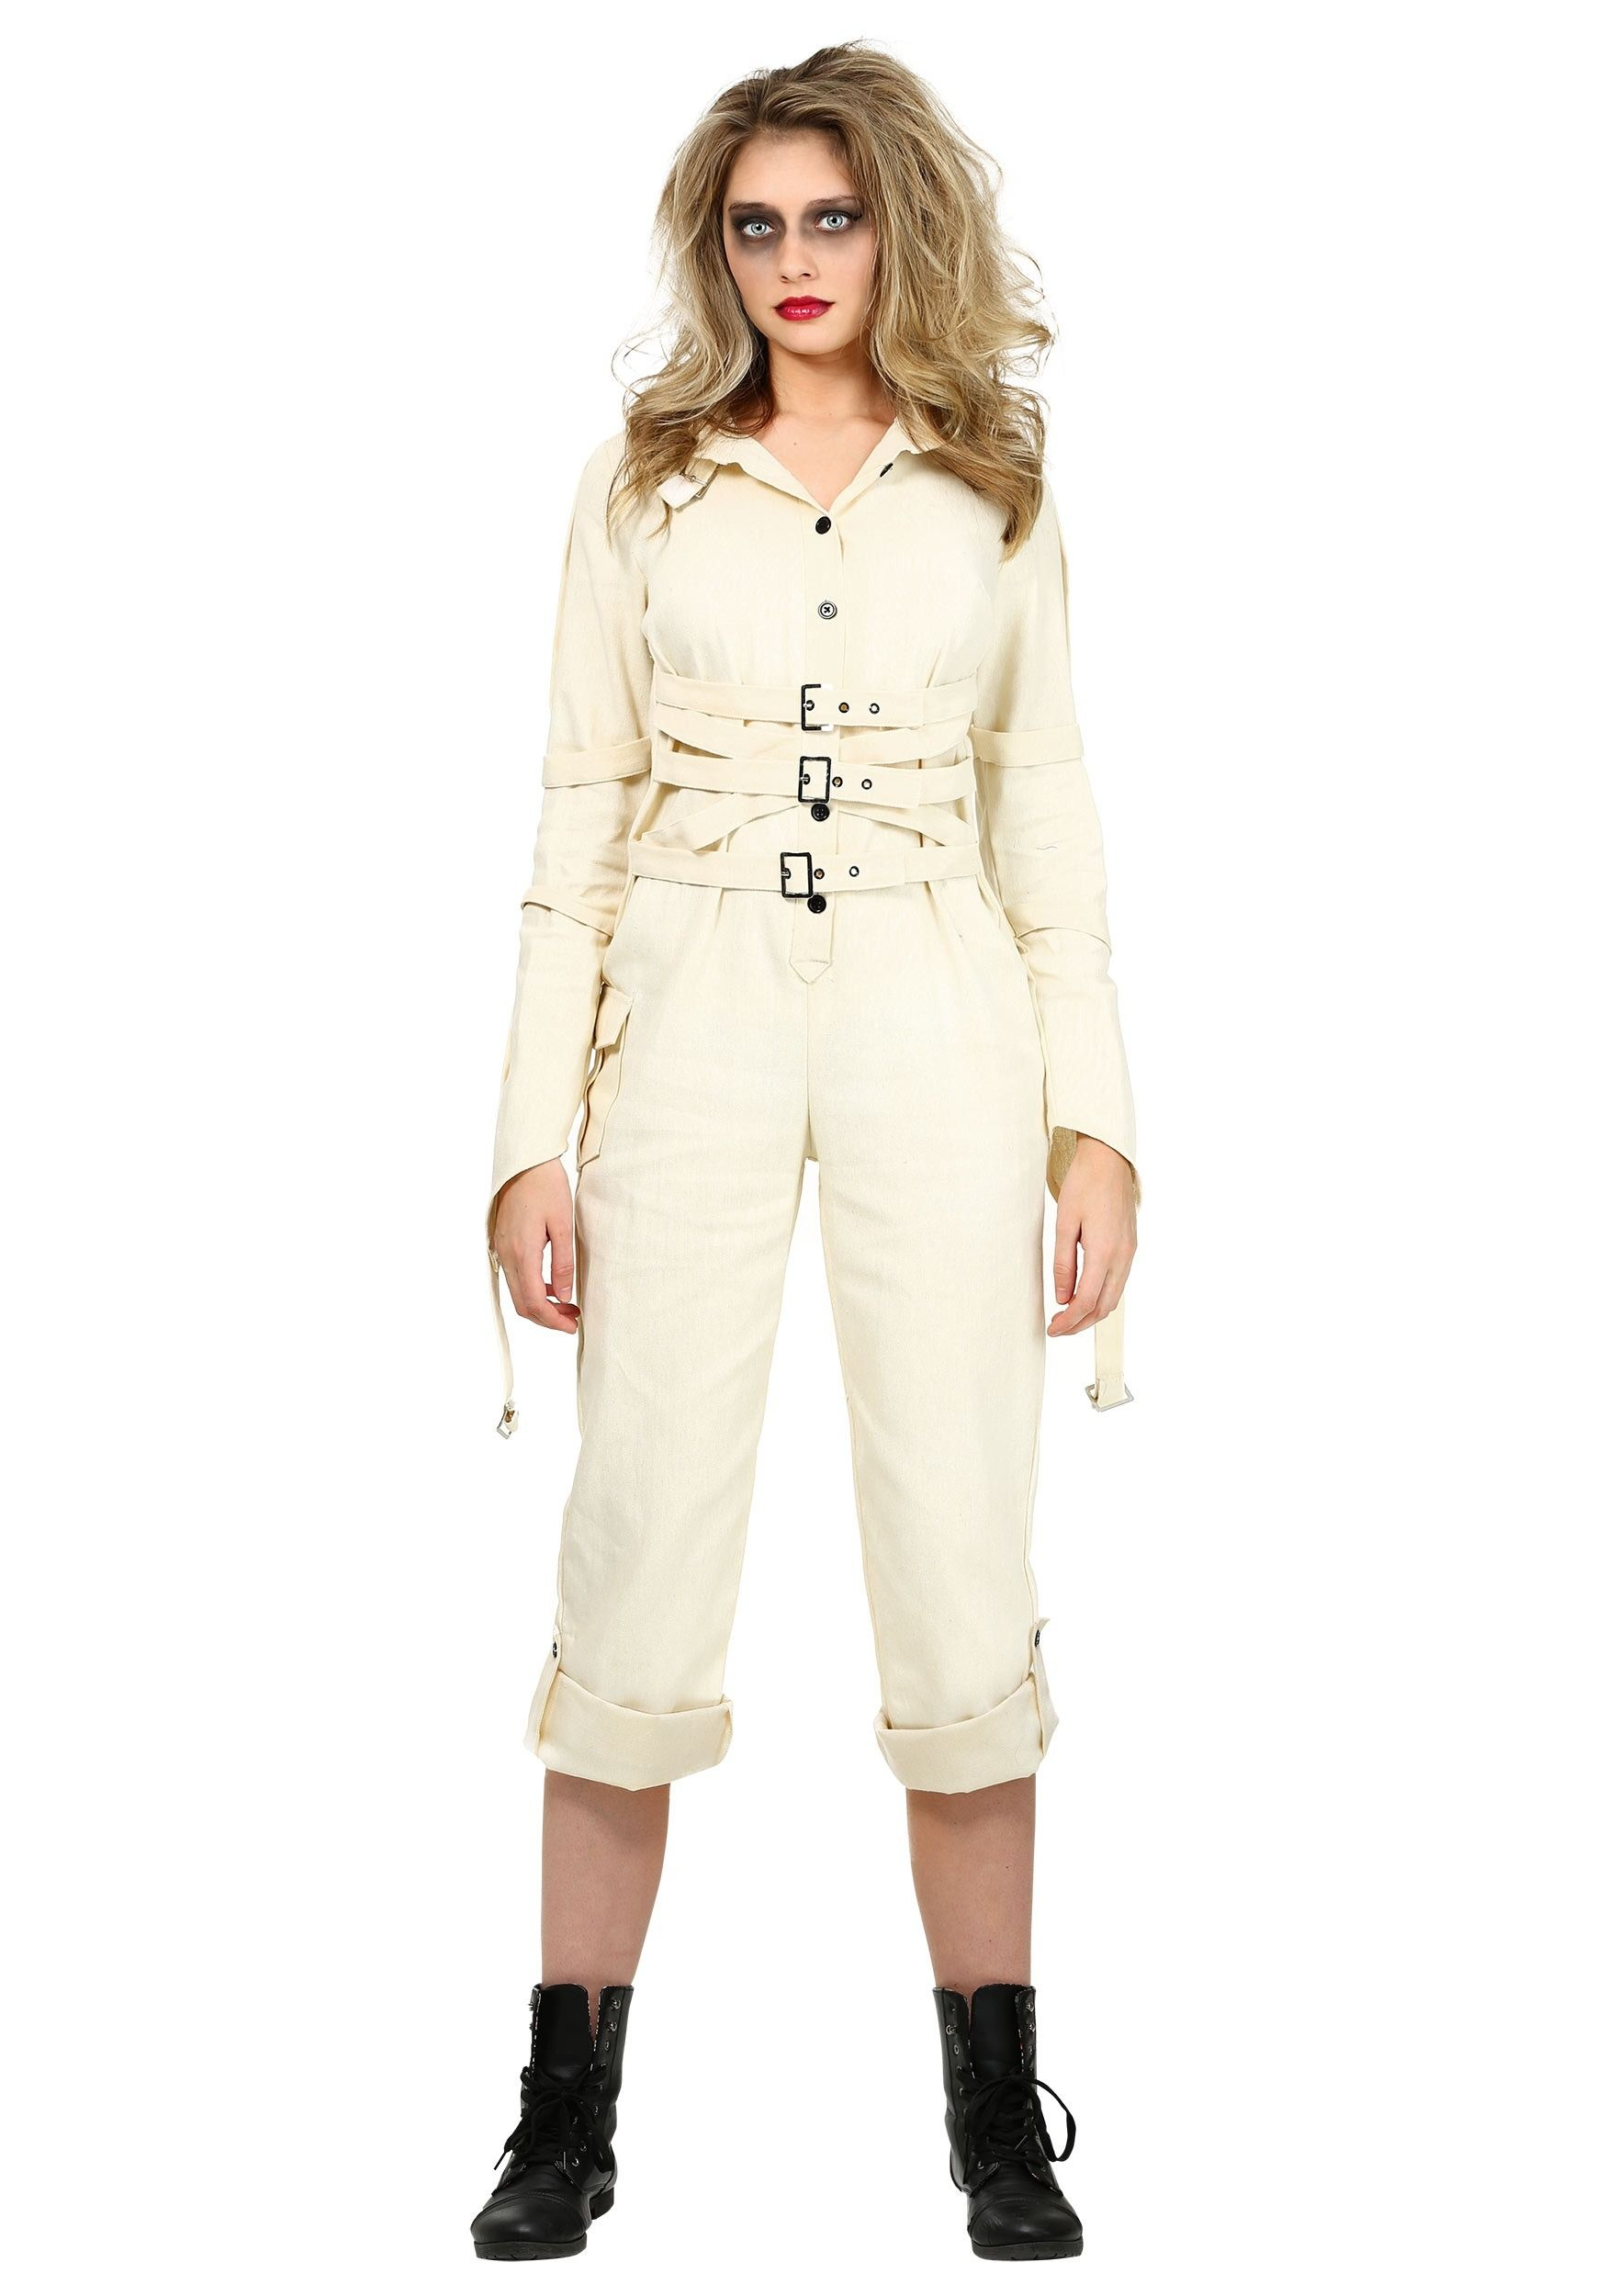 Women\'s Halloween costume ideas - Stand out among your friends and ...